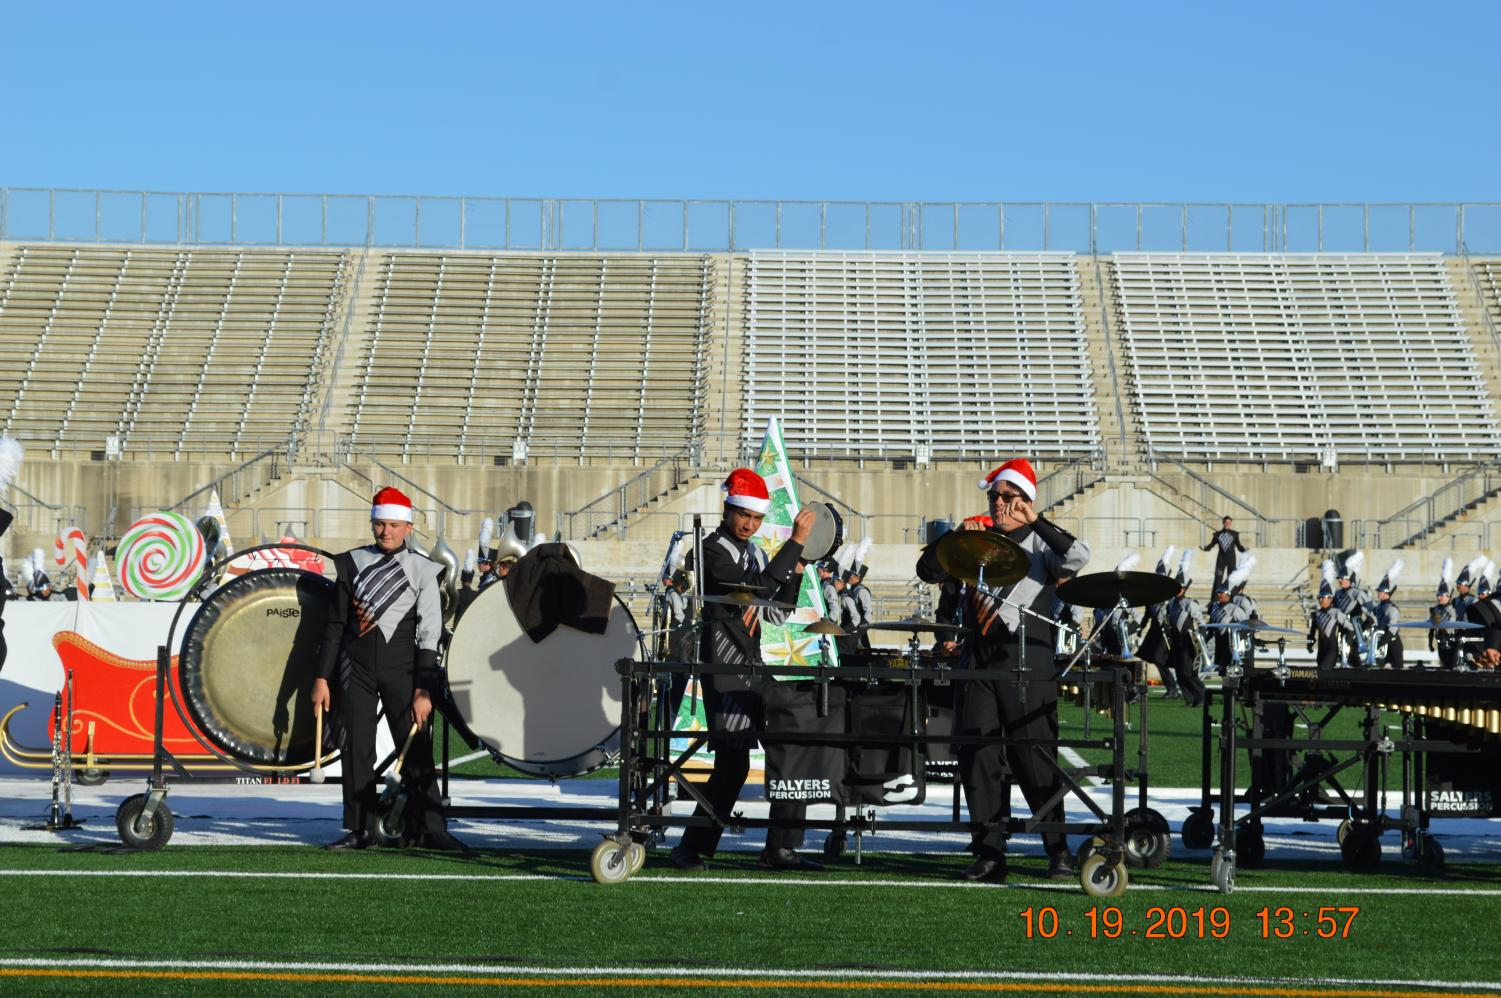 Adorned+with+Santa+hats%2C+percussion+players+play+snare+and+cymbals.